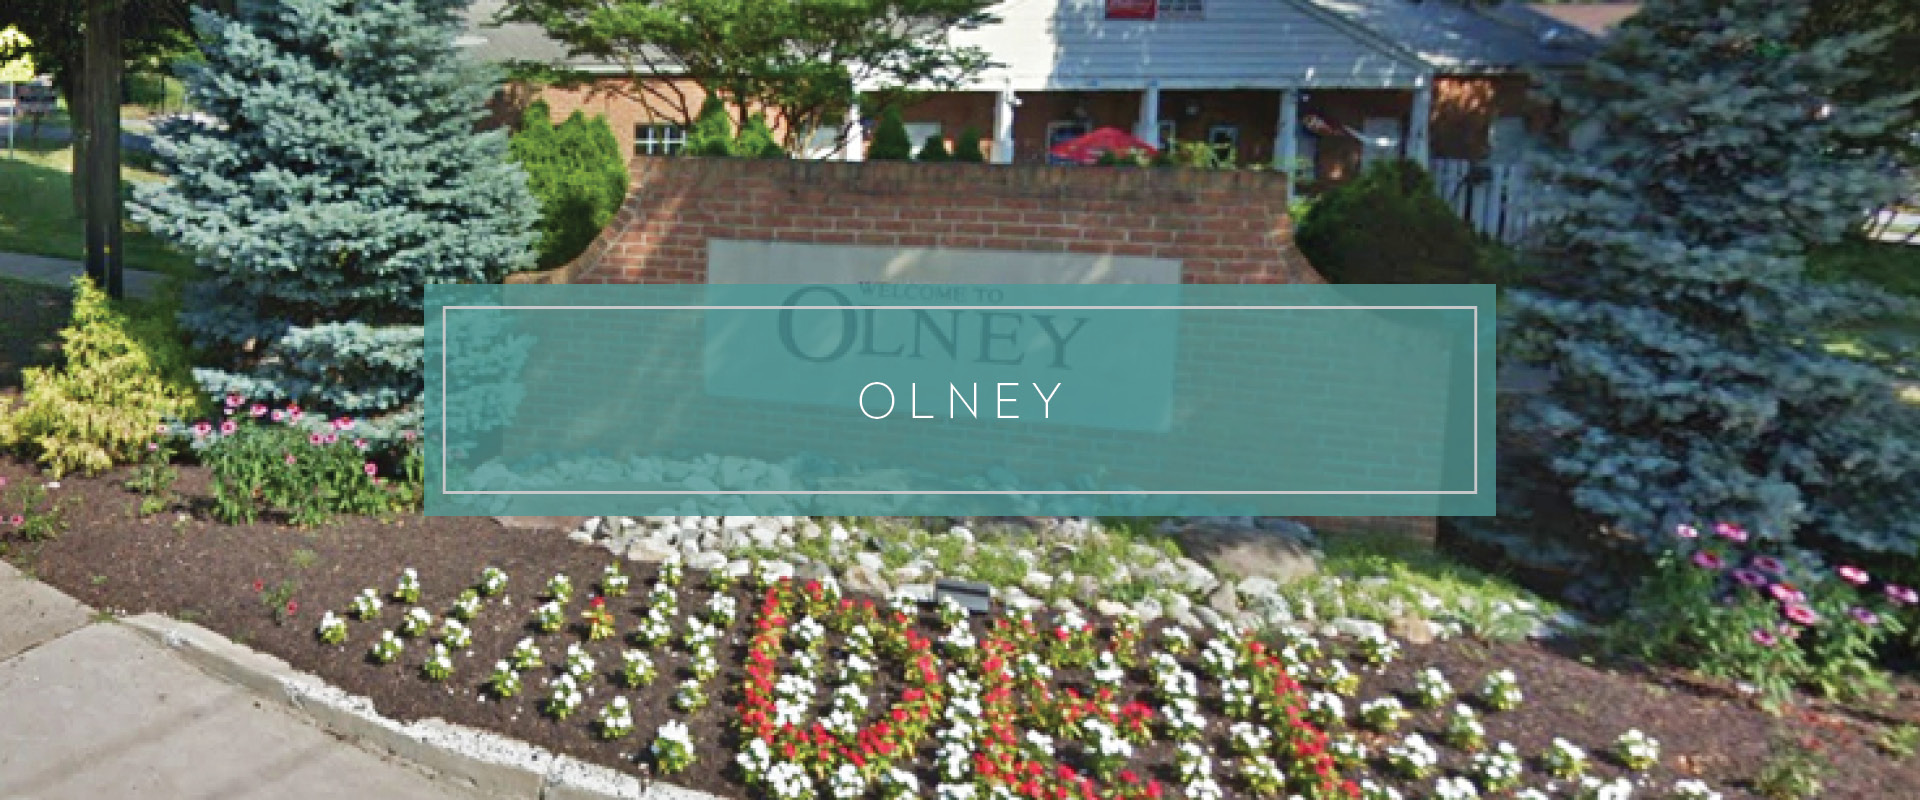 Olney Maryland Real Estate - Homes for Sale in Olney